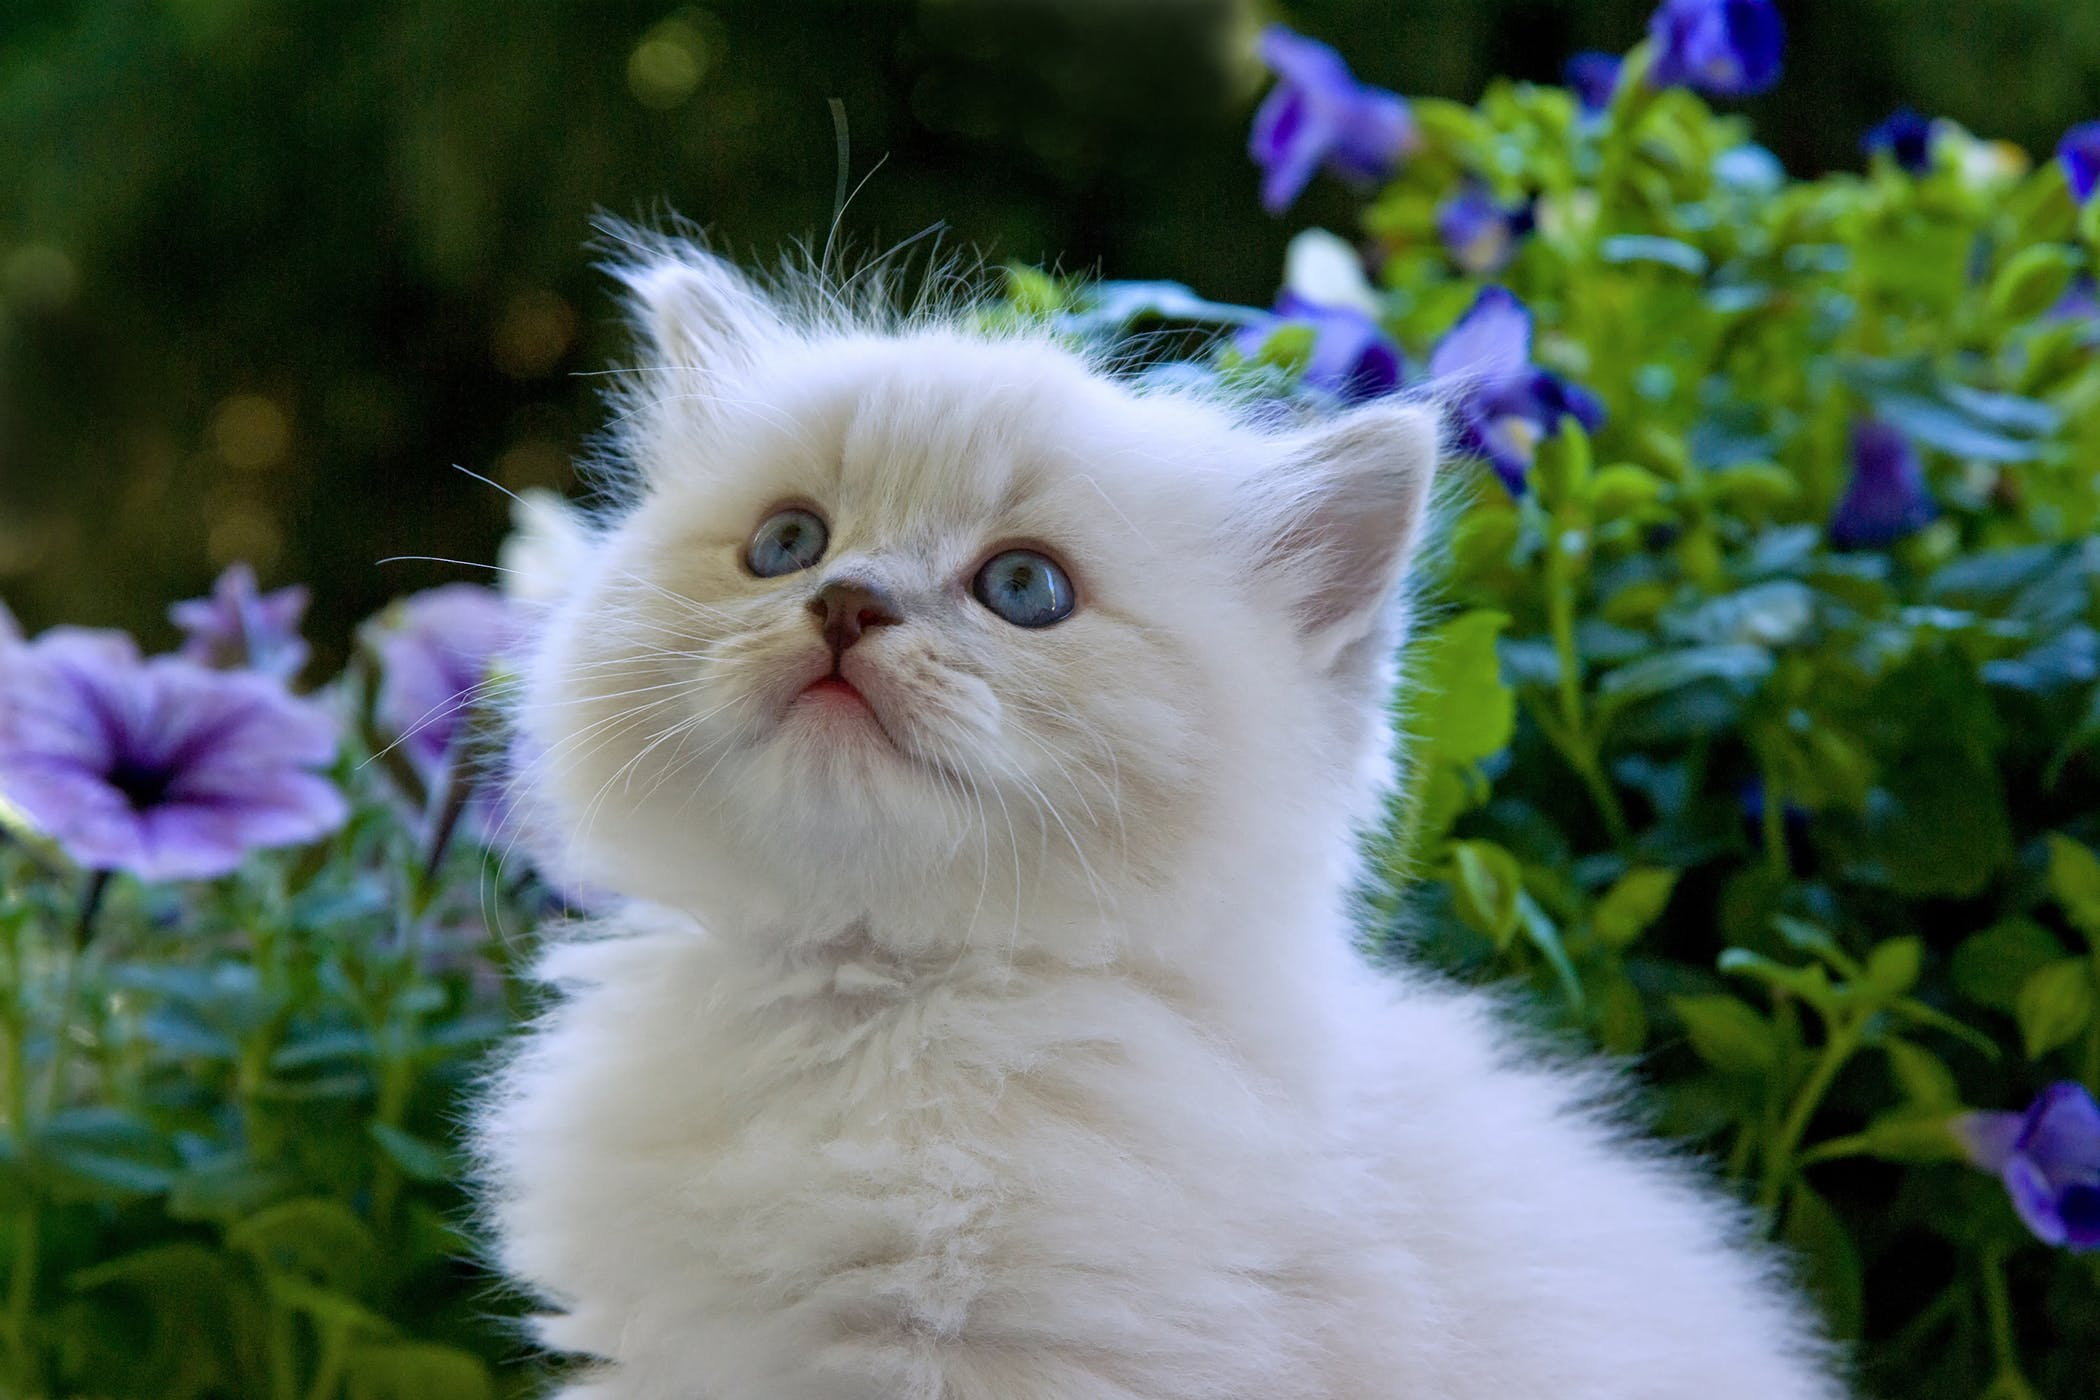 Lymphadenopathy in Cats - Symptoms, Causes, Diagnosis